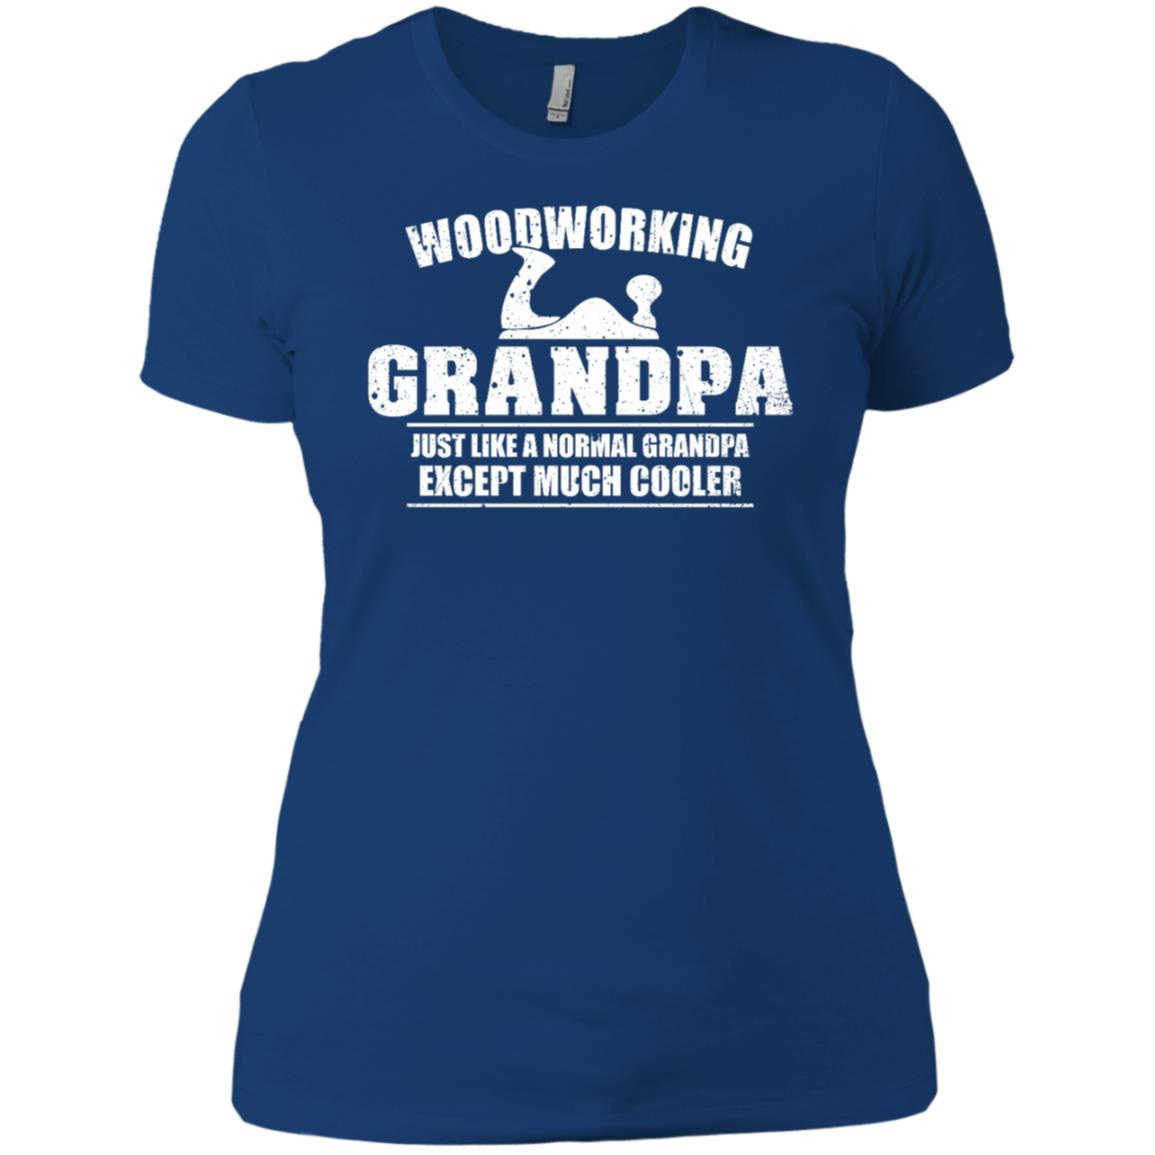 Woodworking Grandpa Funny Dad Father's Day Gift Men Women Short Sleeve